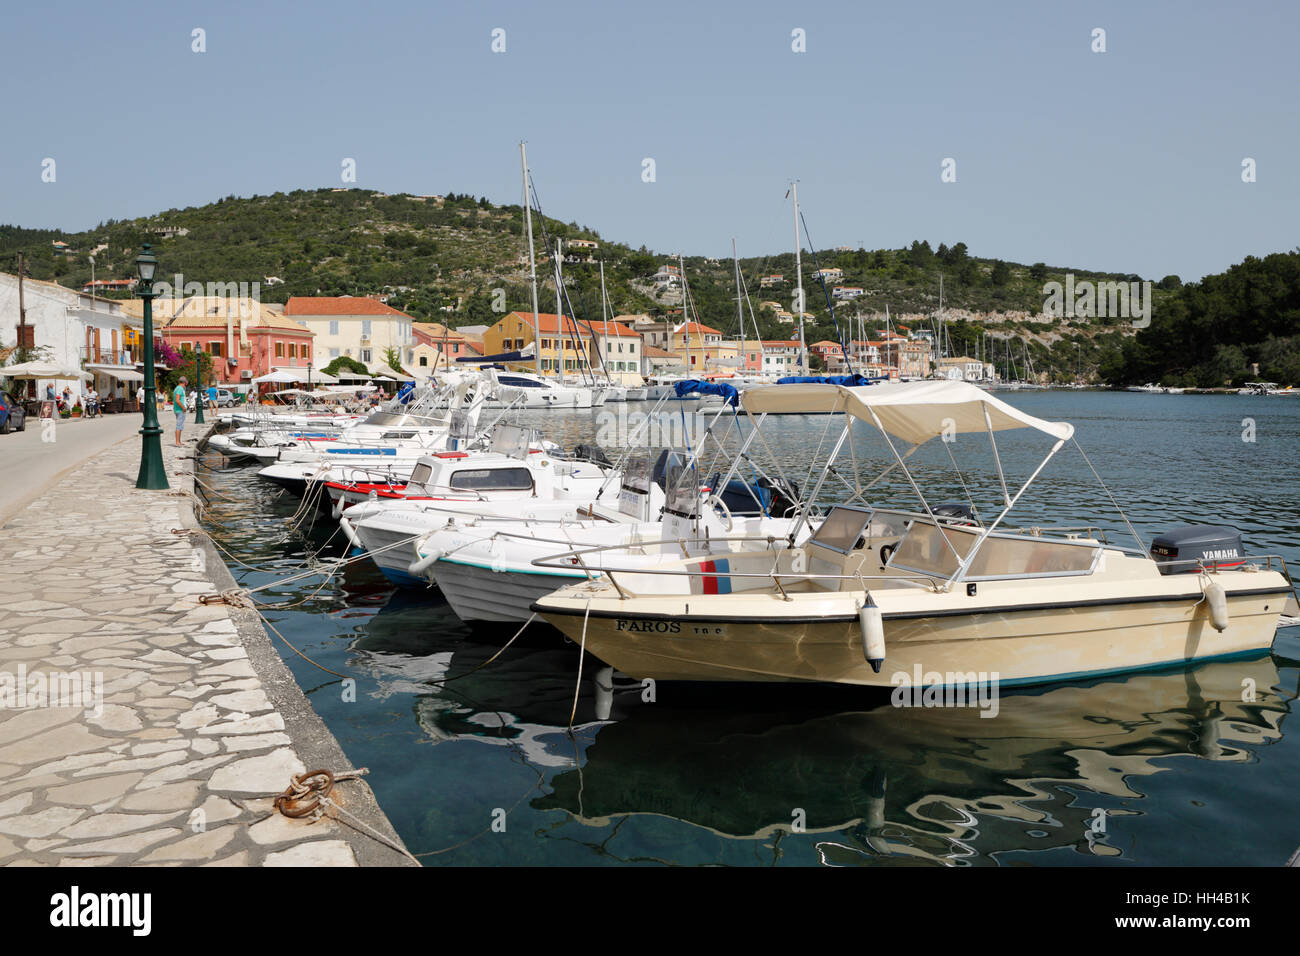 Harbour of Gaios town, Paxos, Ionian Islands, Greek Islands, Greece, Europe Stock Photo